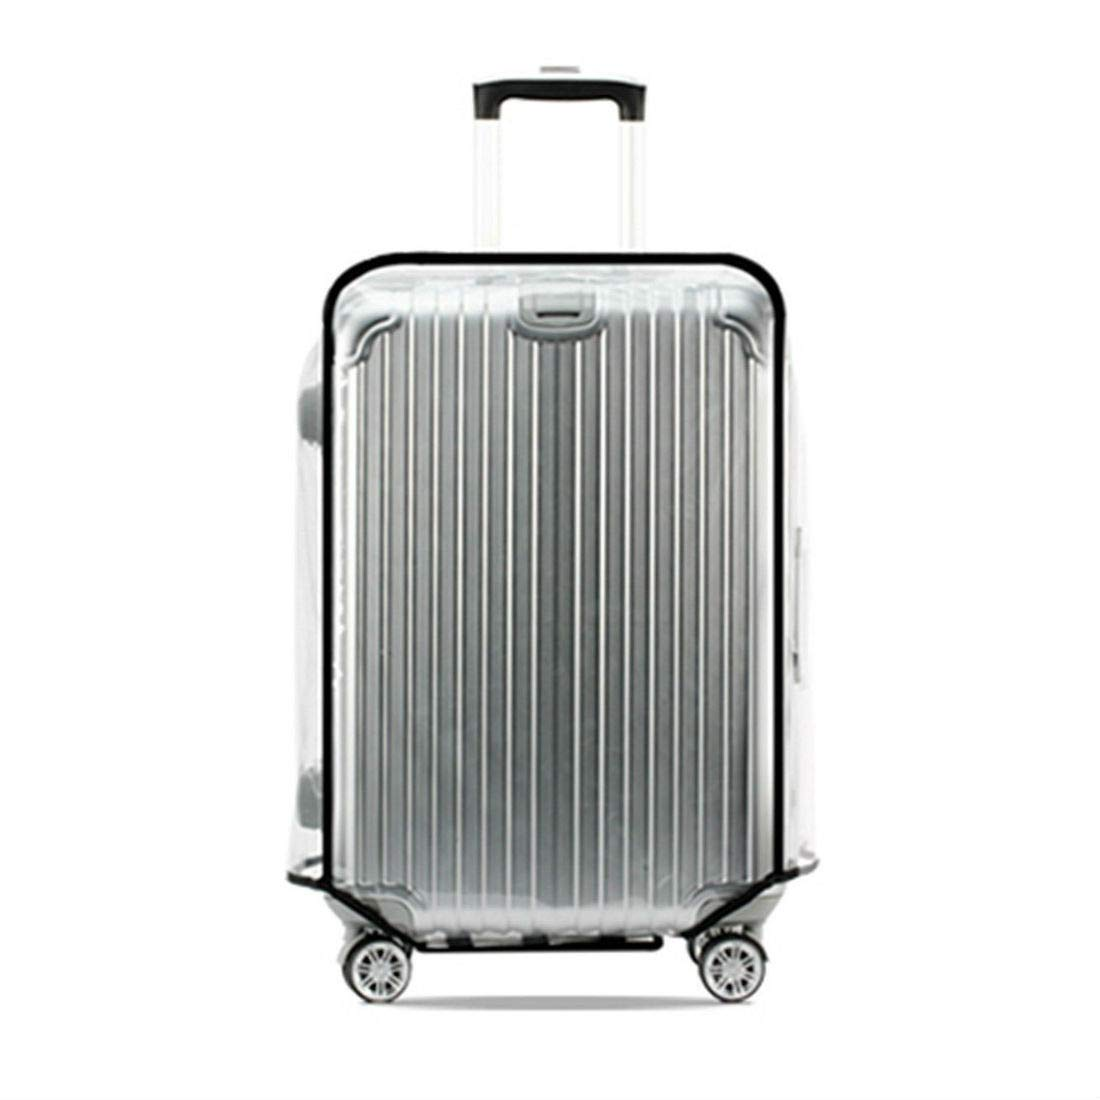 Waterproof Clear Transparent Luggage Suitcase Cover Case Protector Travel 20-28 24